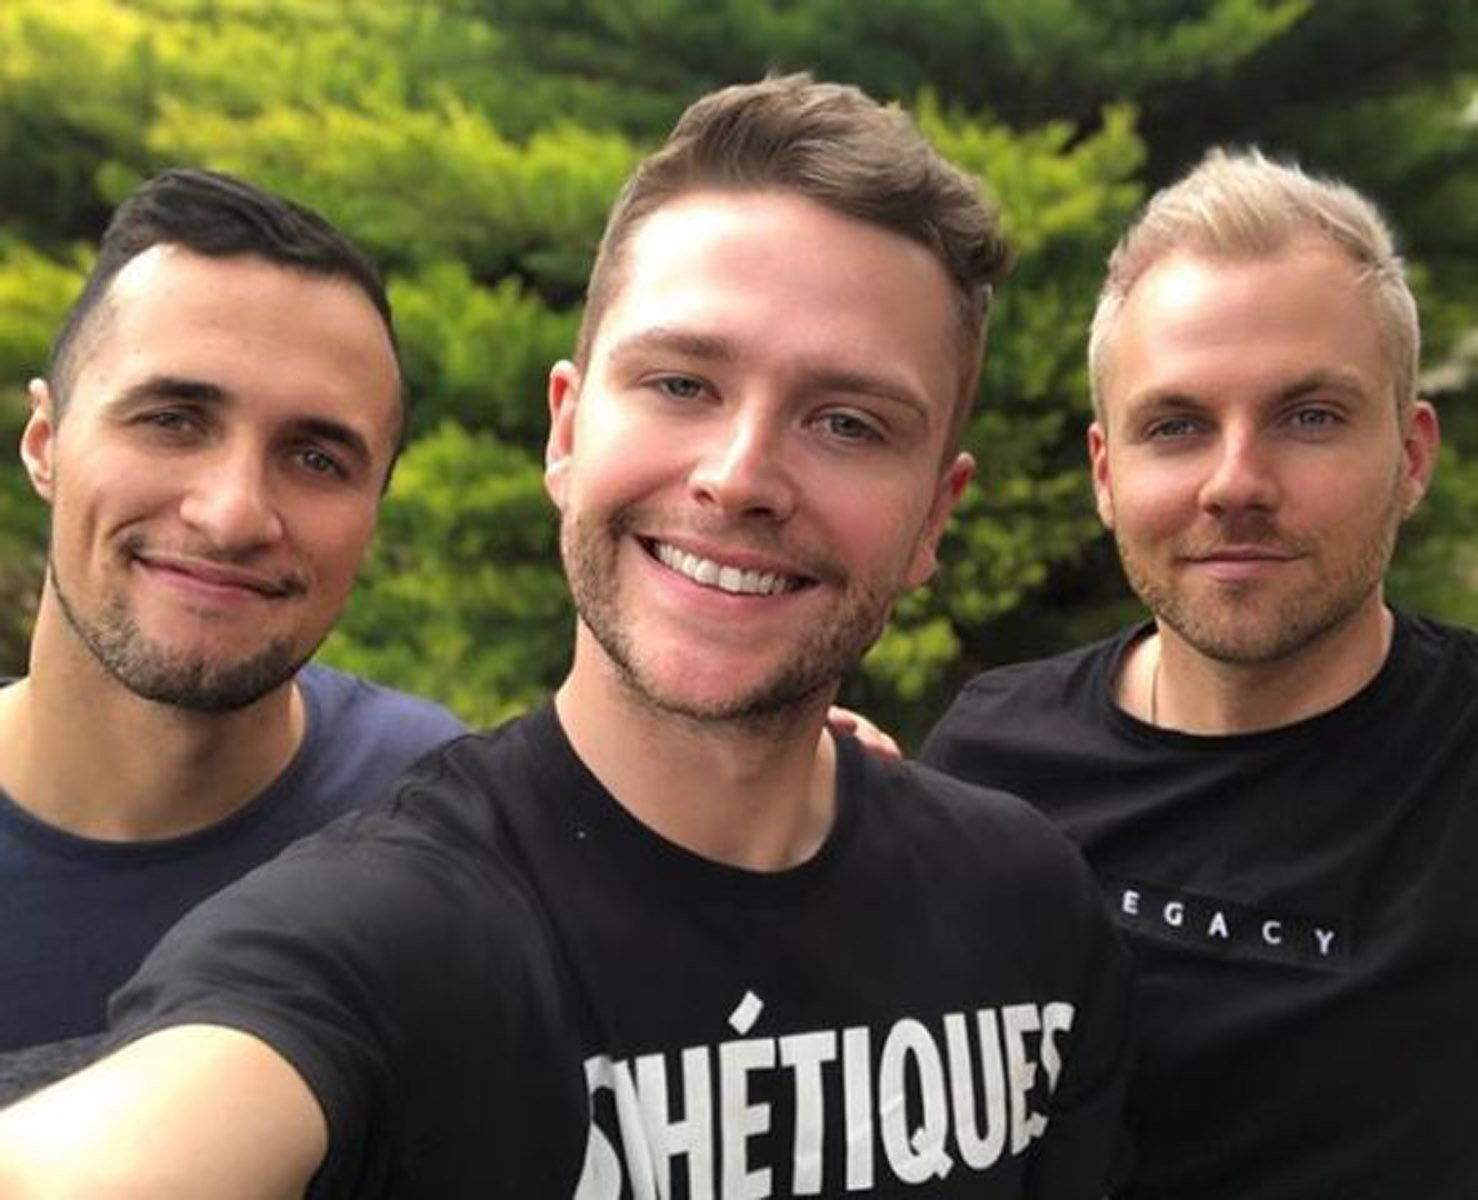 Rules for gay threesomes suggest you come